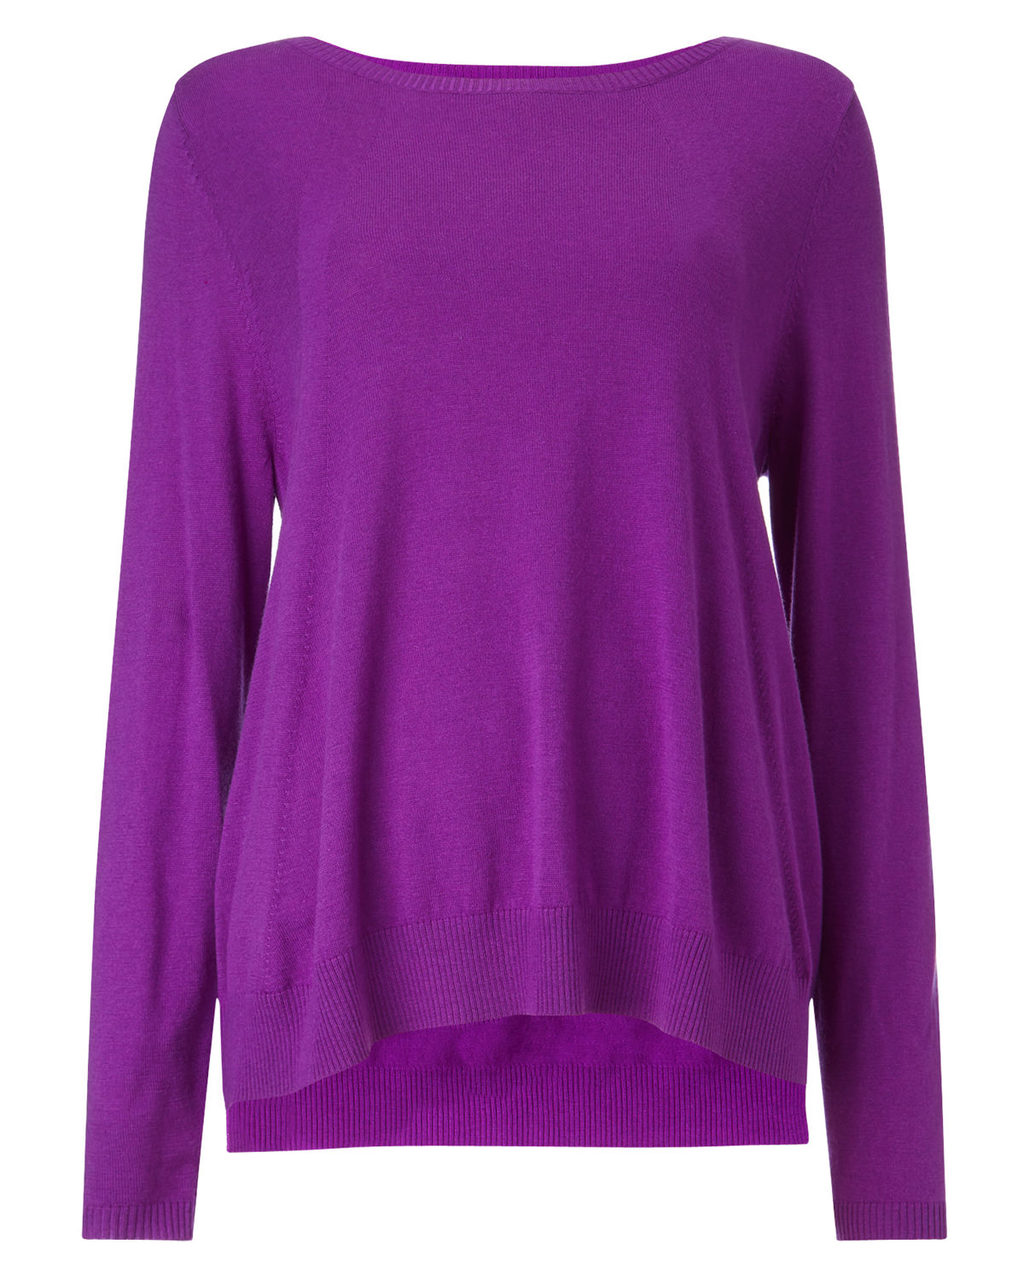 Esta Swing Knit - neckline: slash/boat neckline; pattern: plain; style: standard; predominant colour: purple; occasions: casual, creative work; length: standard; fibres: wool - 100%; fit: loose; sleeve length: long sleeve; sleeve style: standard; texture group: knits/crochet; pattern type: knitted - fine stitch; season: a/w 2015; wardrobe: highlight